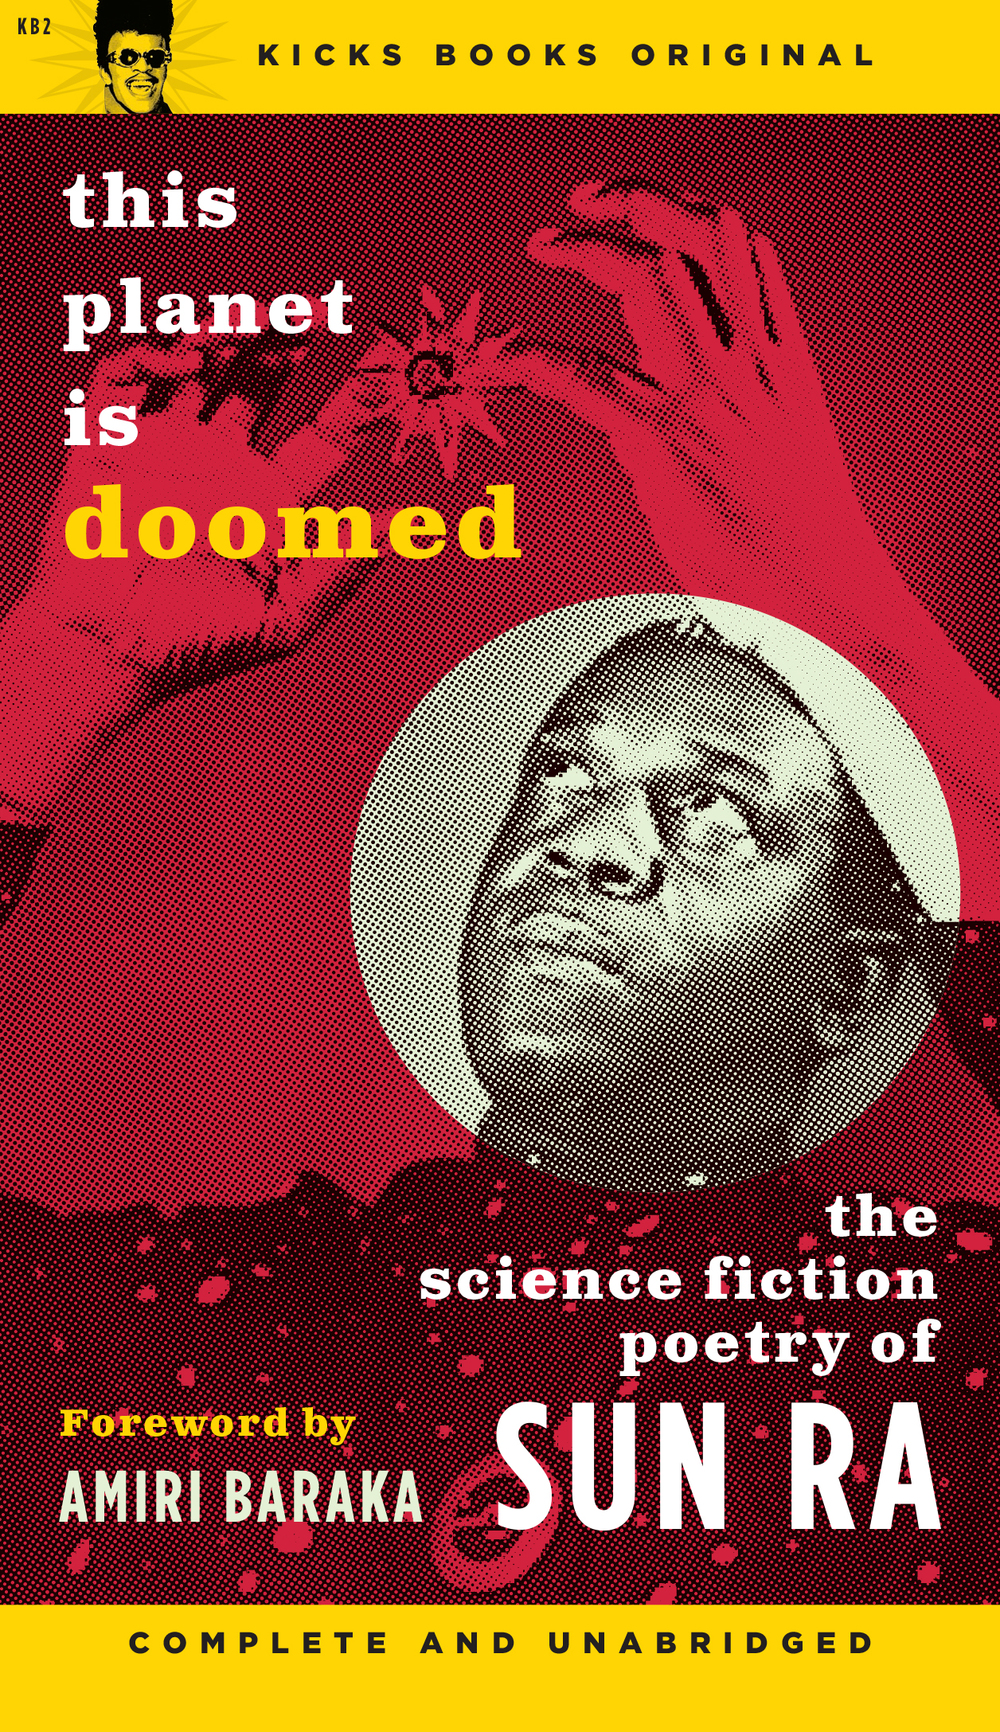 Sun Ra - This Planet is Doomed cover